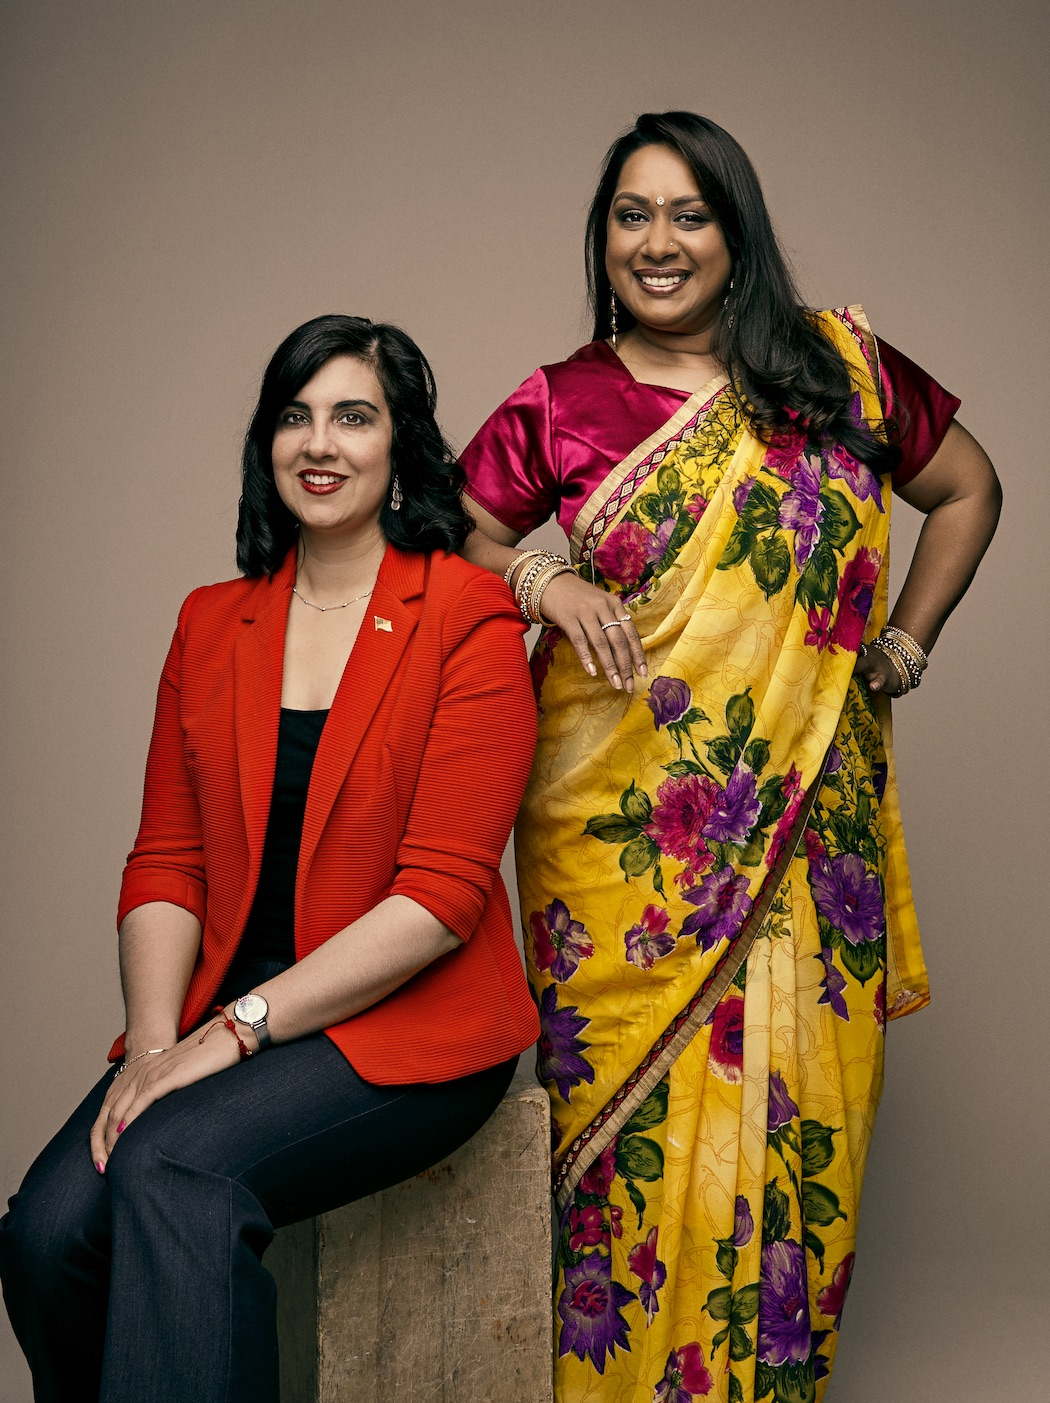 Nicole Malliotokis (left) and Bharati Kemraj (right)